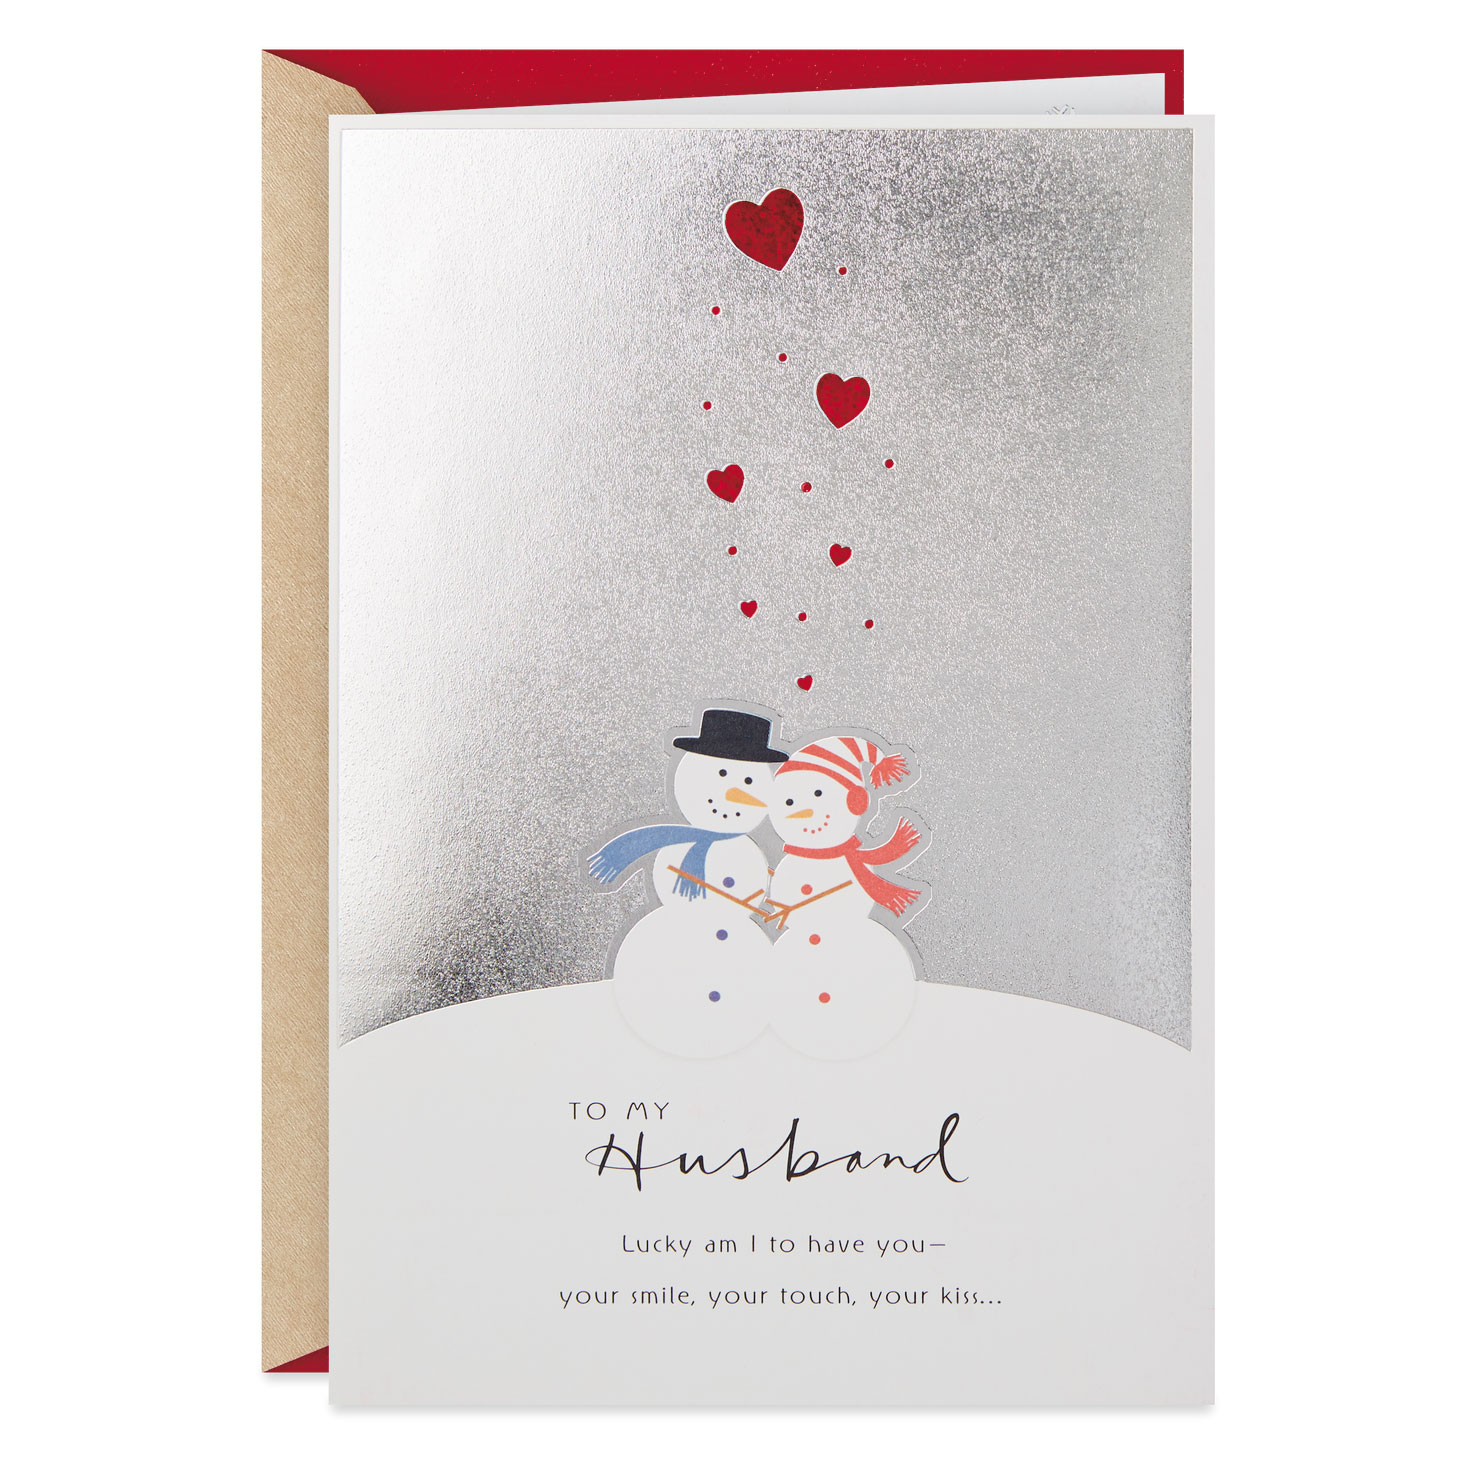 Hugging Snowman Couple Christmas Card For Husband